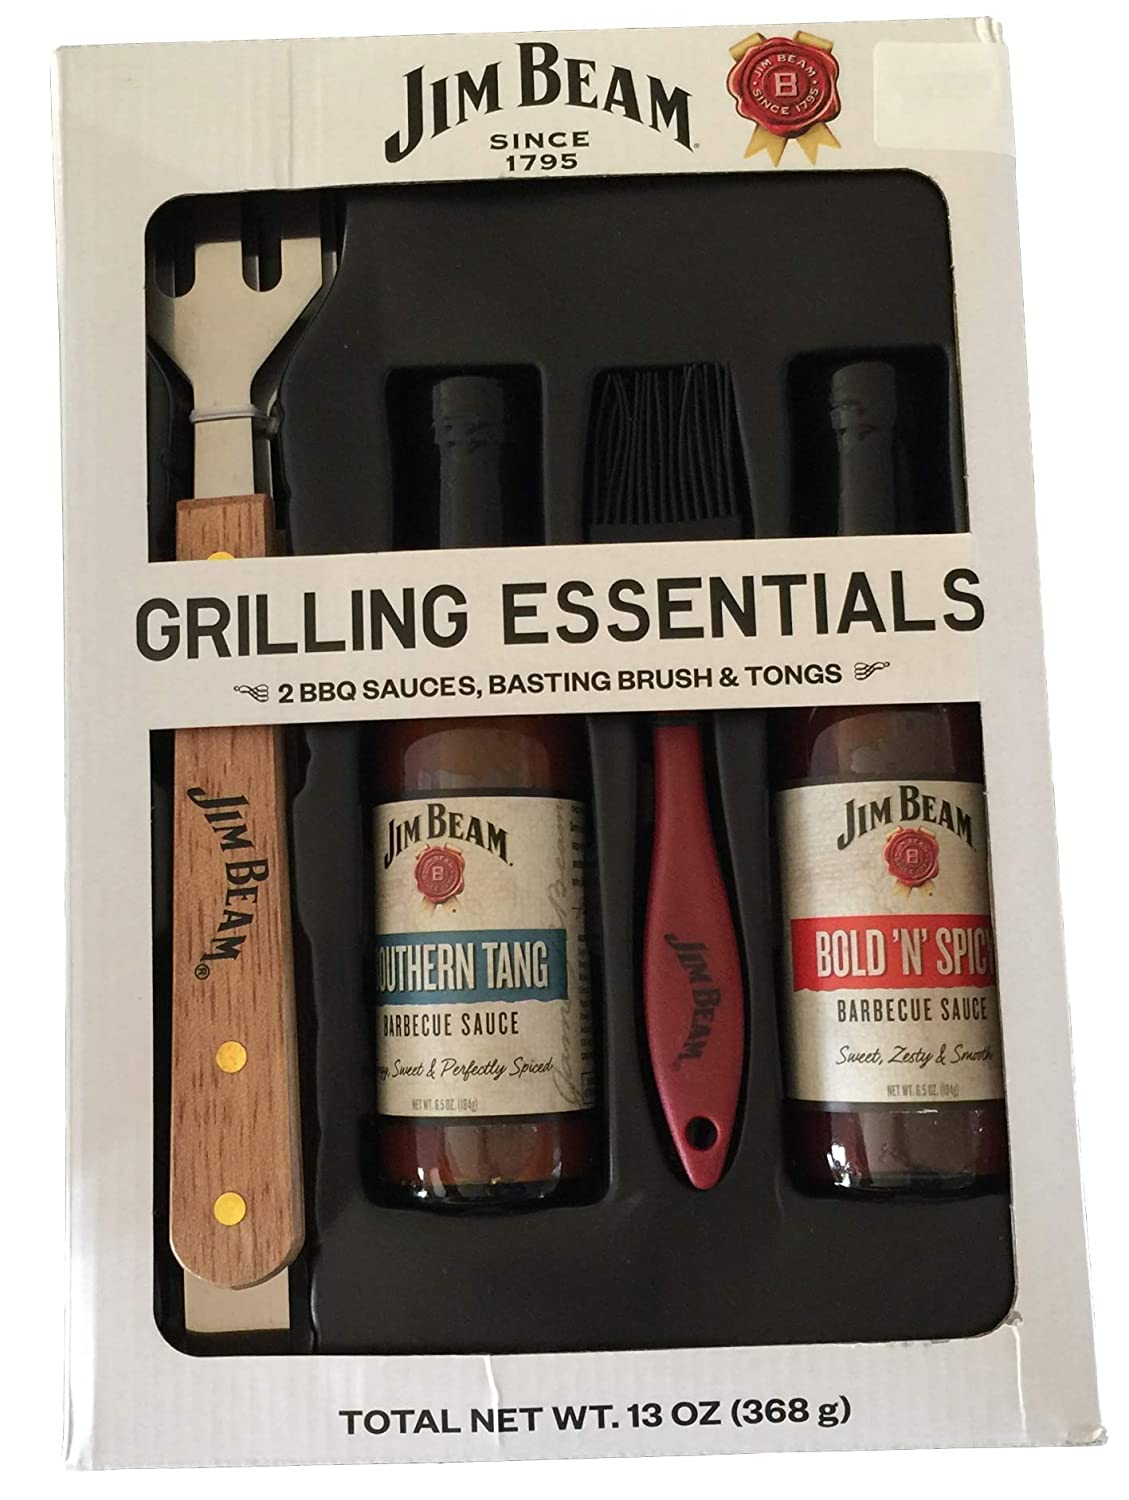 Amazon.com : Jim Beam Grilling Essentials BBQ Gift Set! Includes Bold N Spicy & Southern Tang BBQ Sauce with Basting Brush & Tongs! Great Gift Set Send to ...